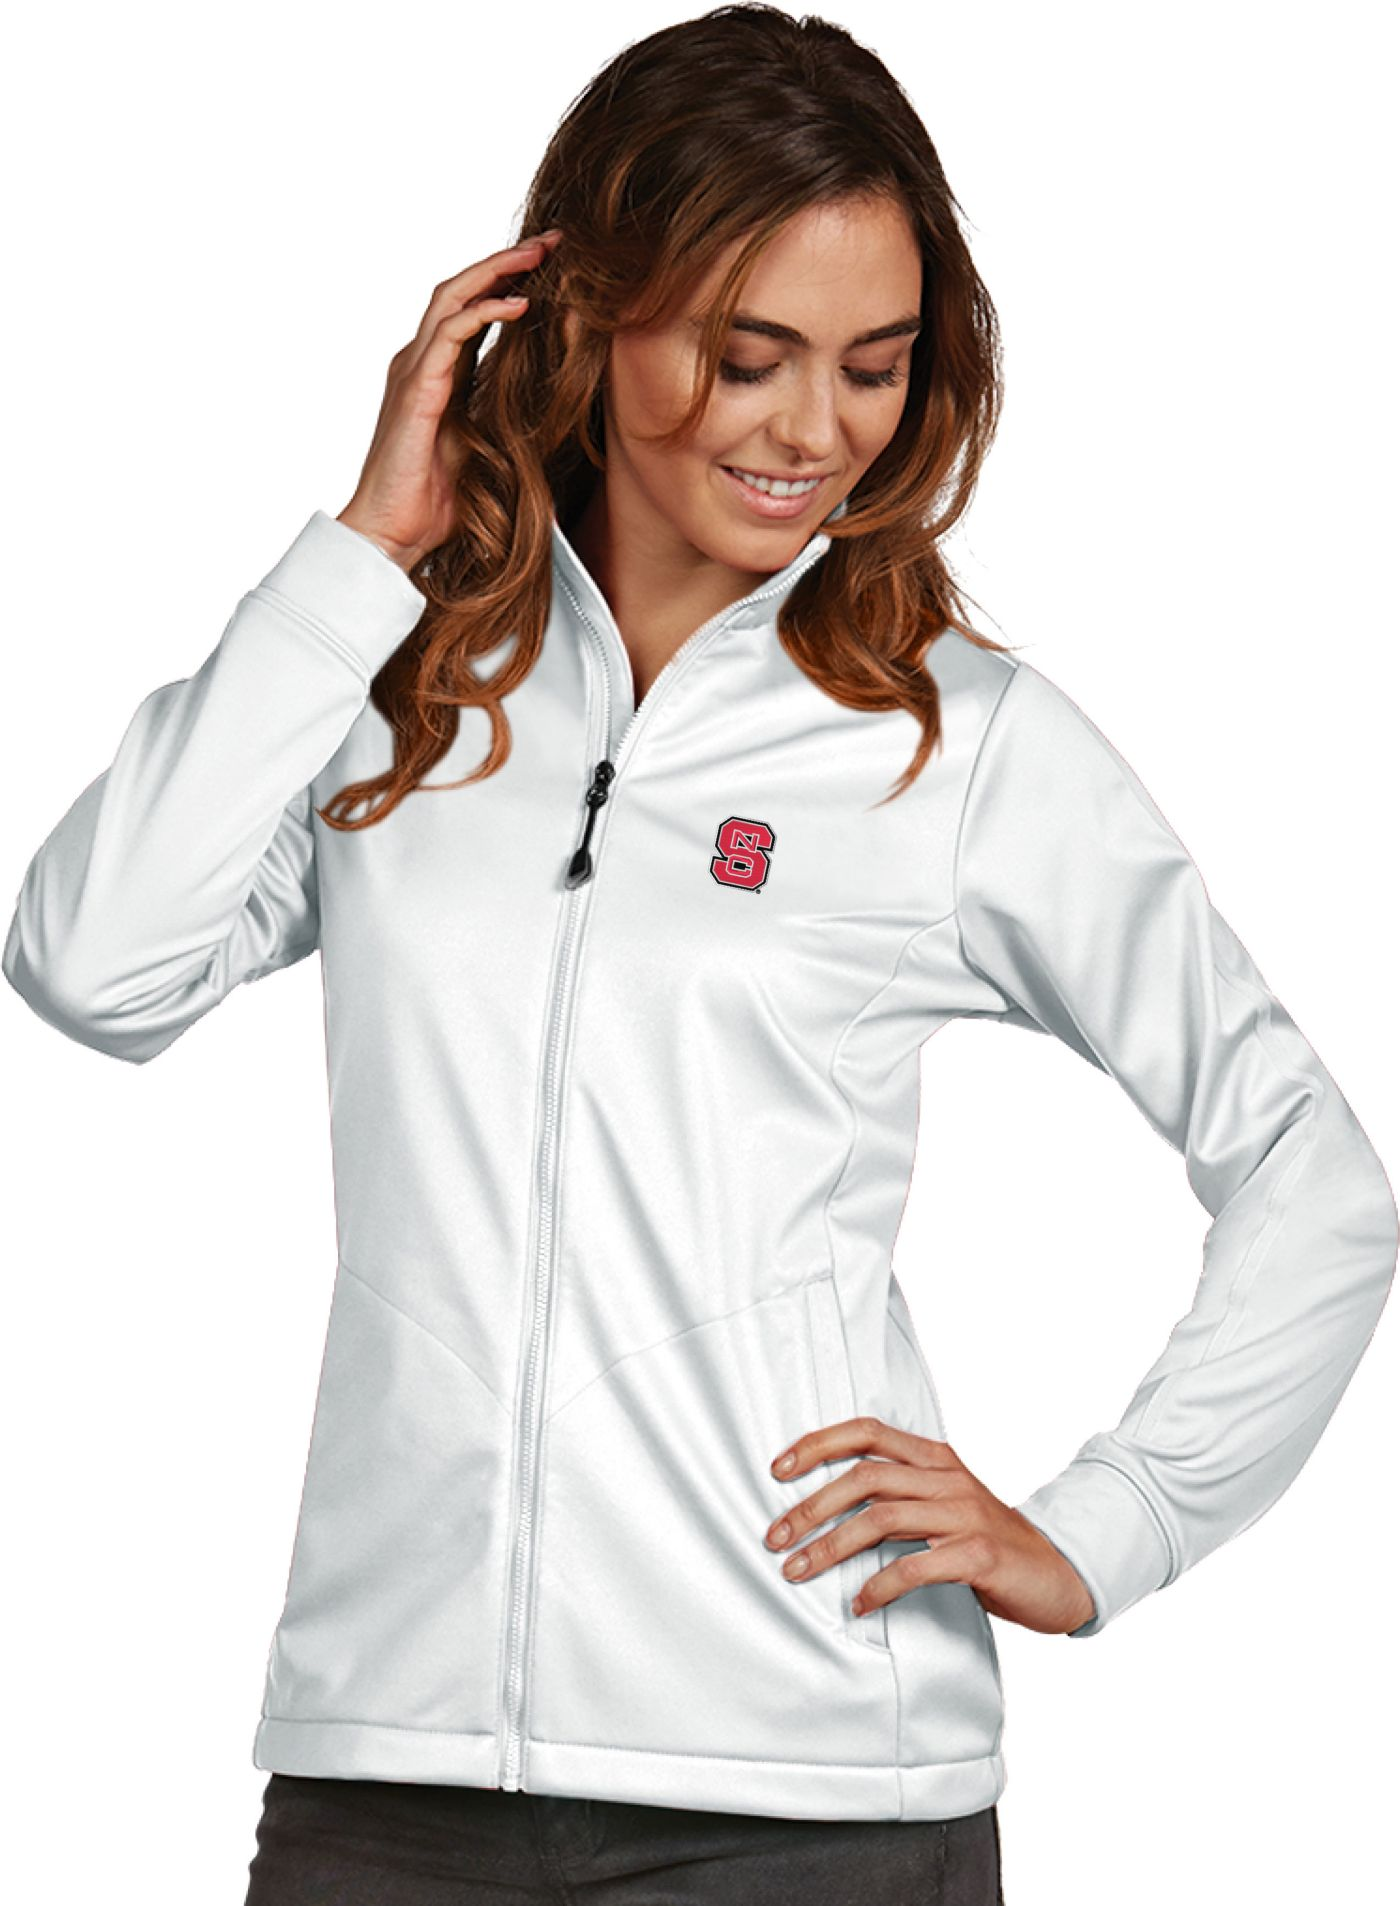 Antigua Women's North Carolina State Wolfpack White Performance Golf Jacket